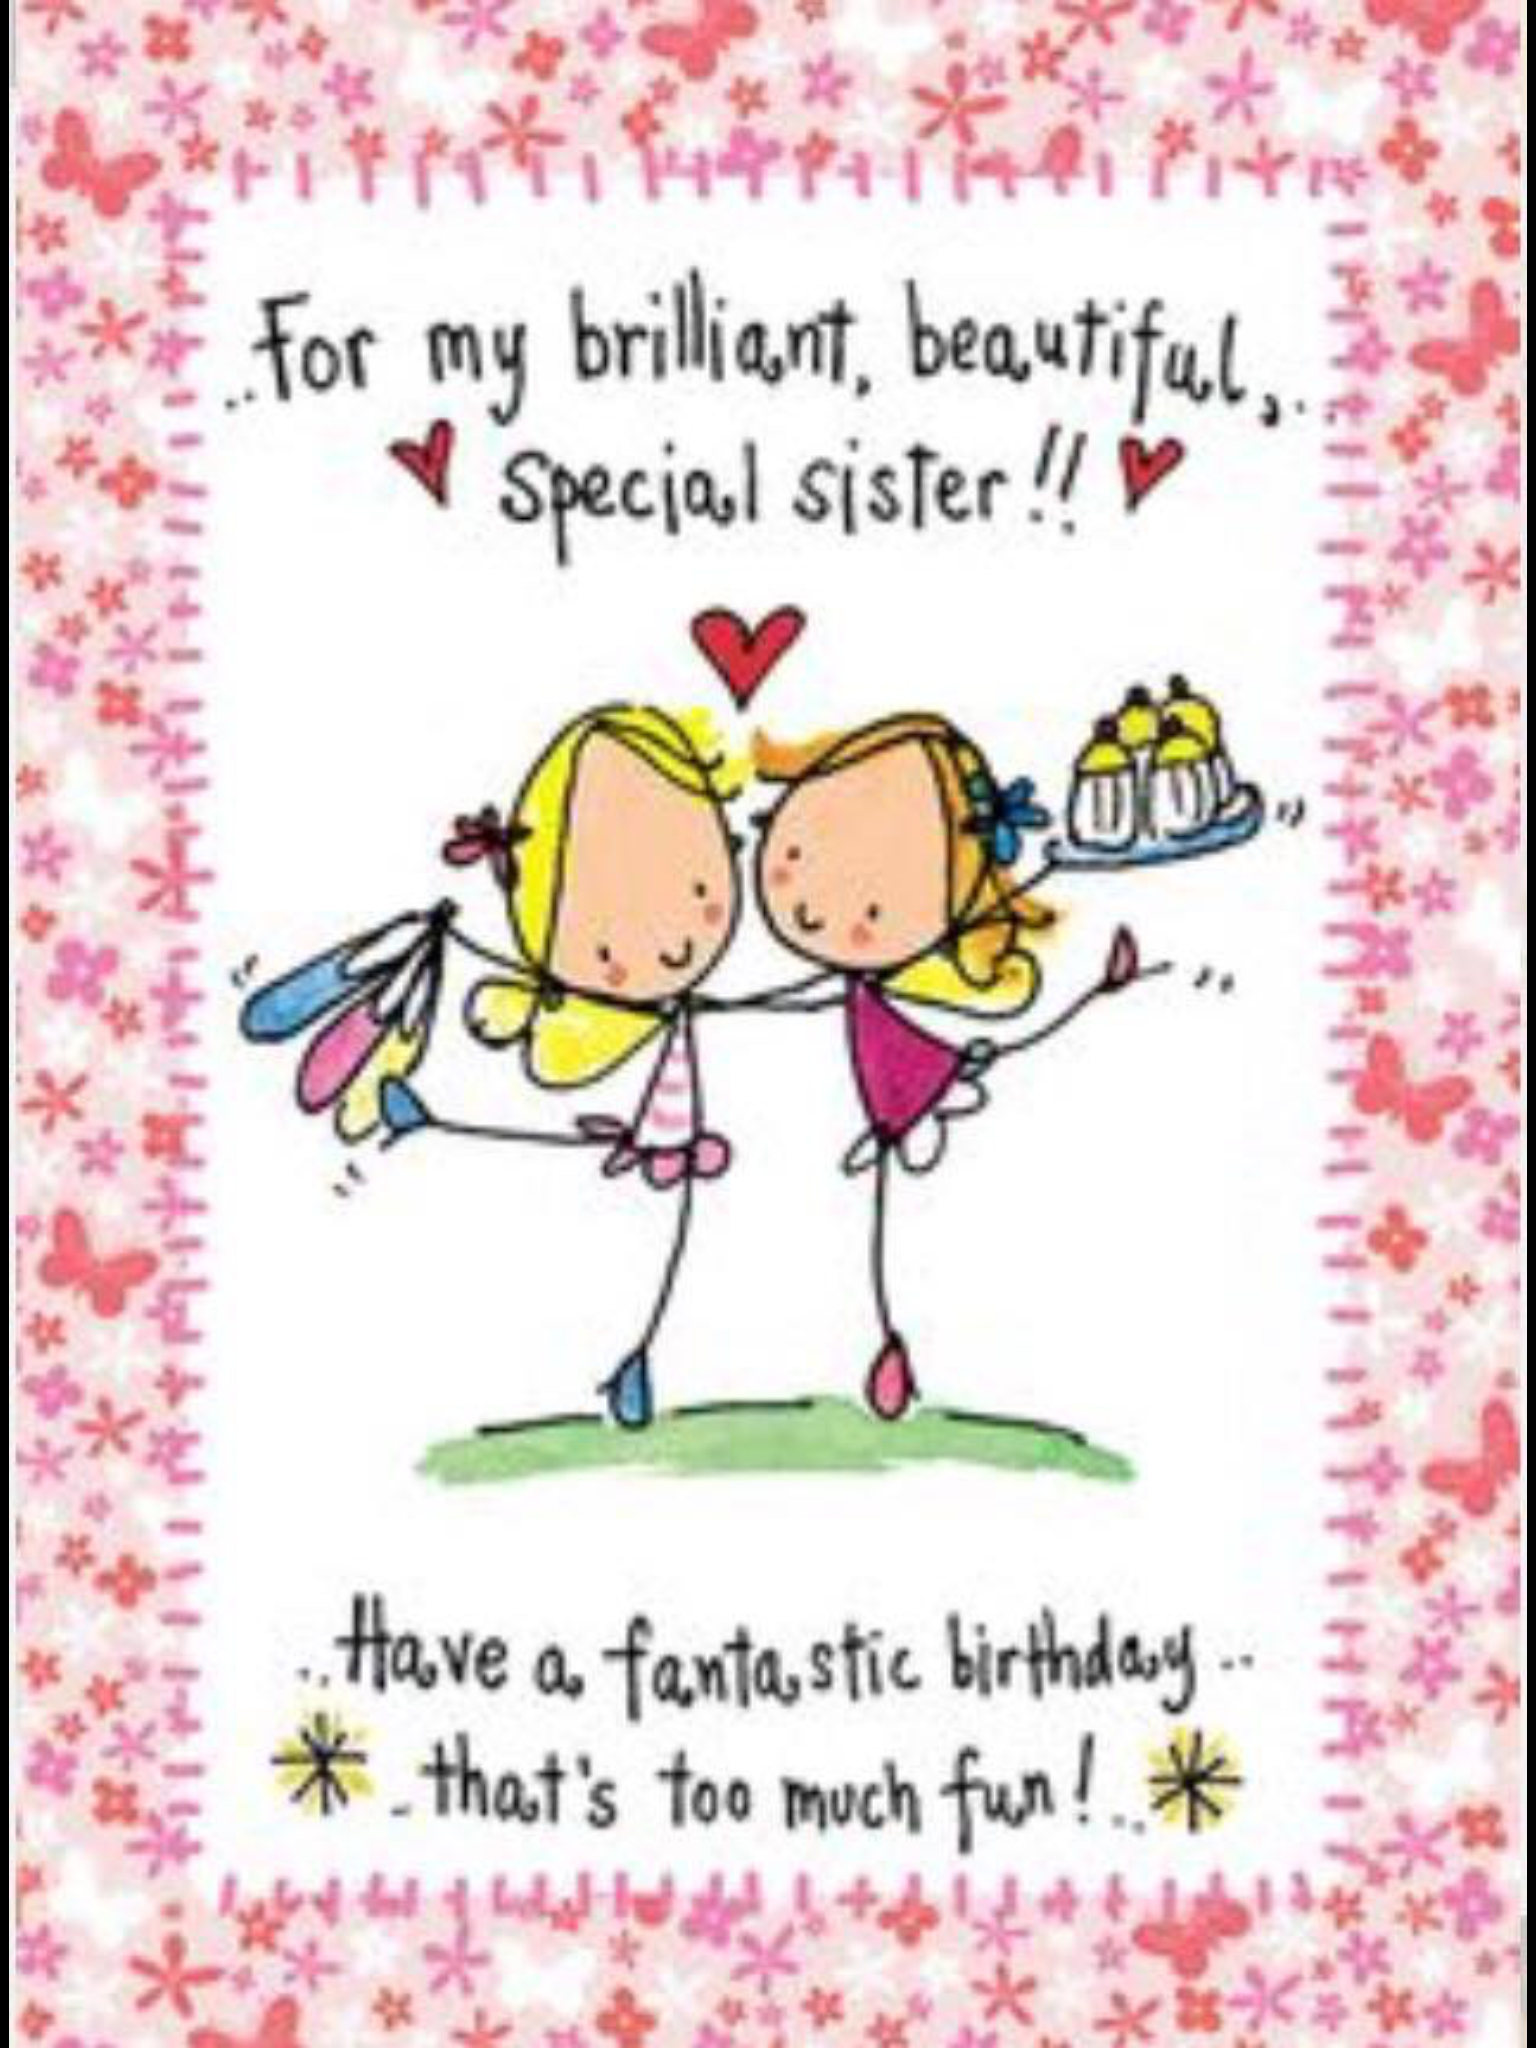 Pin by Murl Jones on Birthday Wishes Pinterest